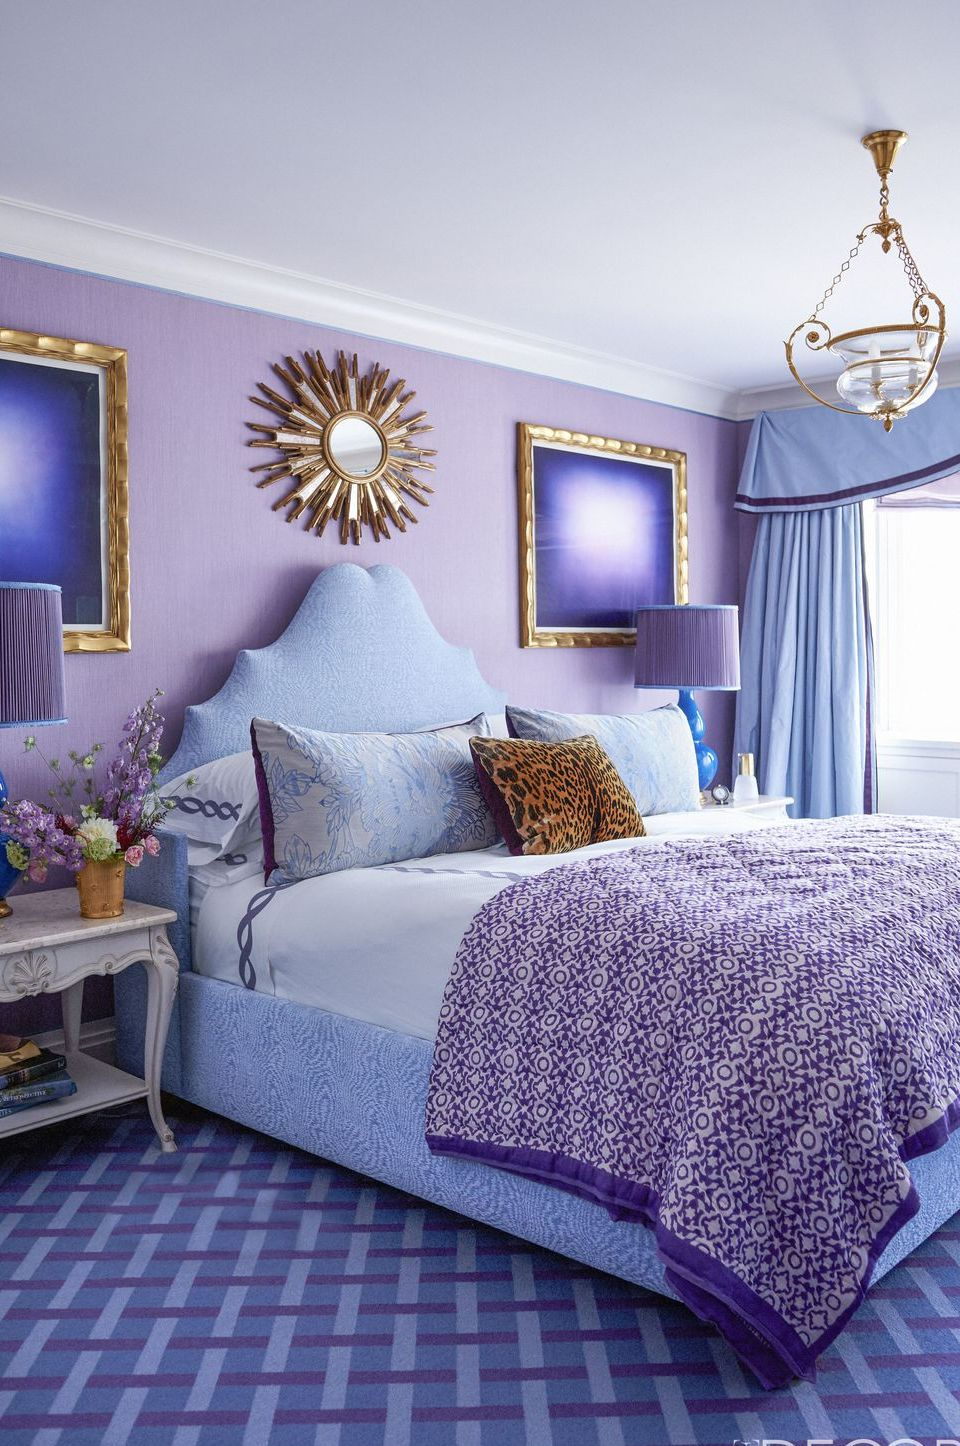 25+ Tips For Decorating Bedroom